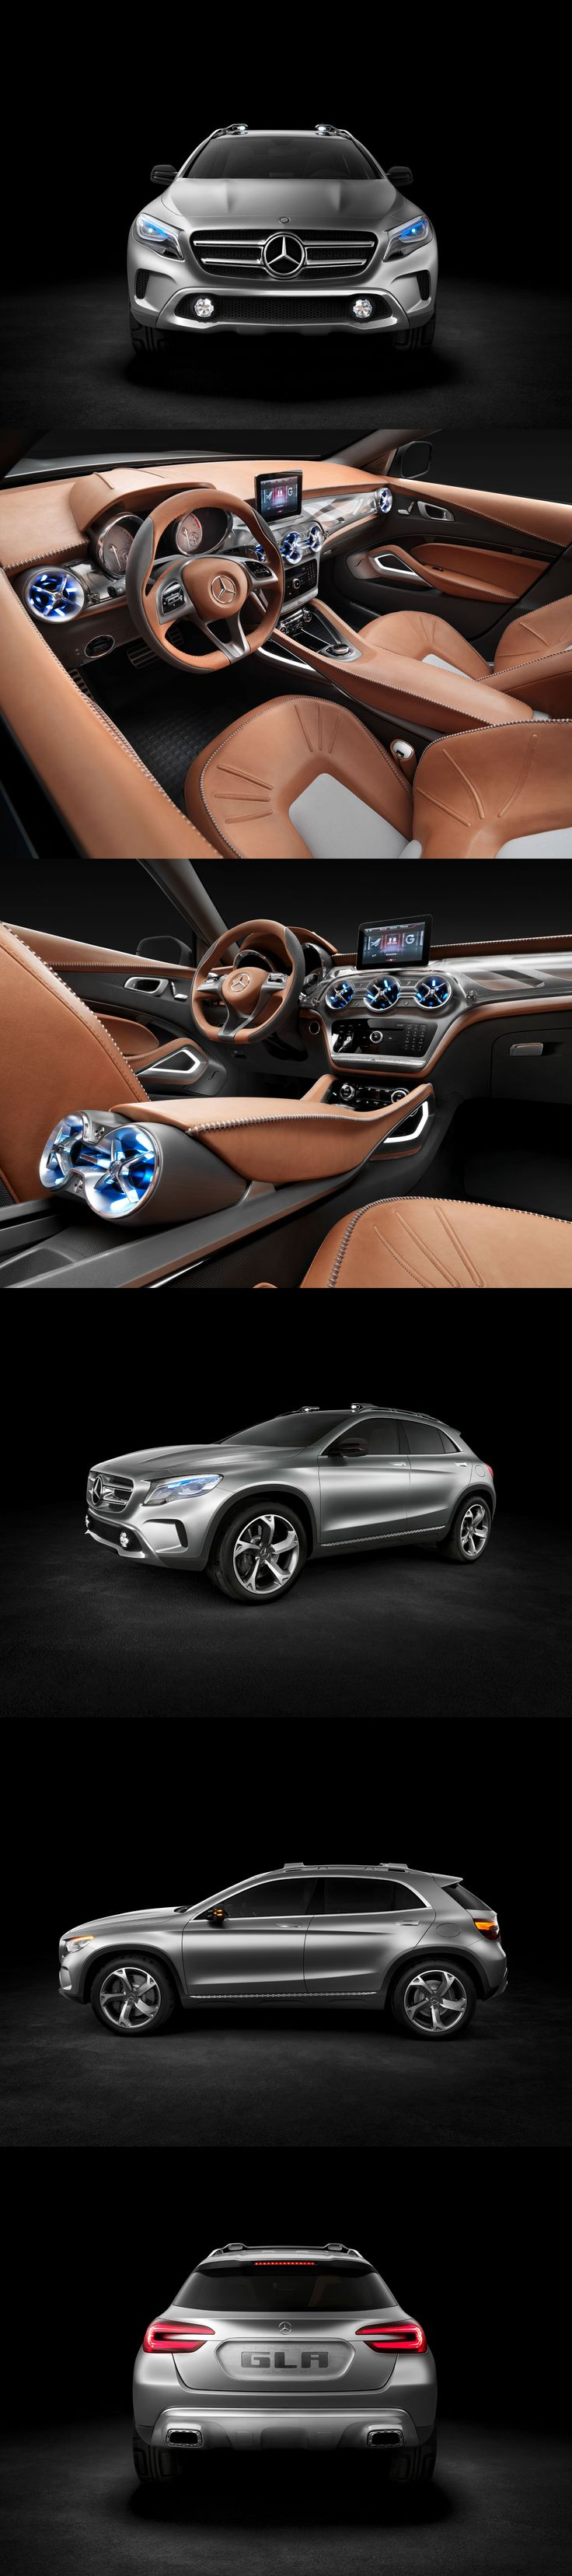 I want this...uhhh...so badly! Mercedes-Benz GLA